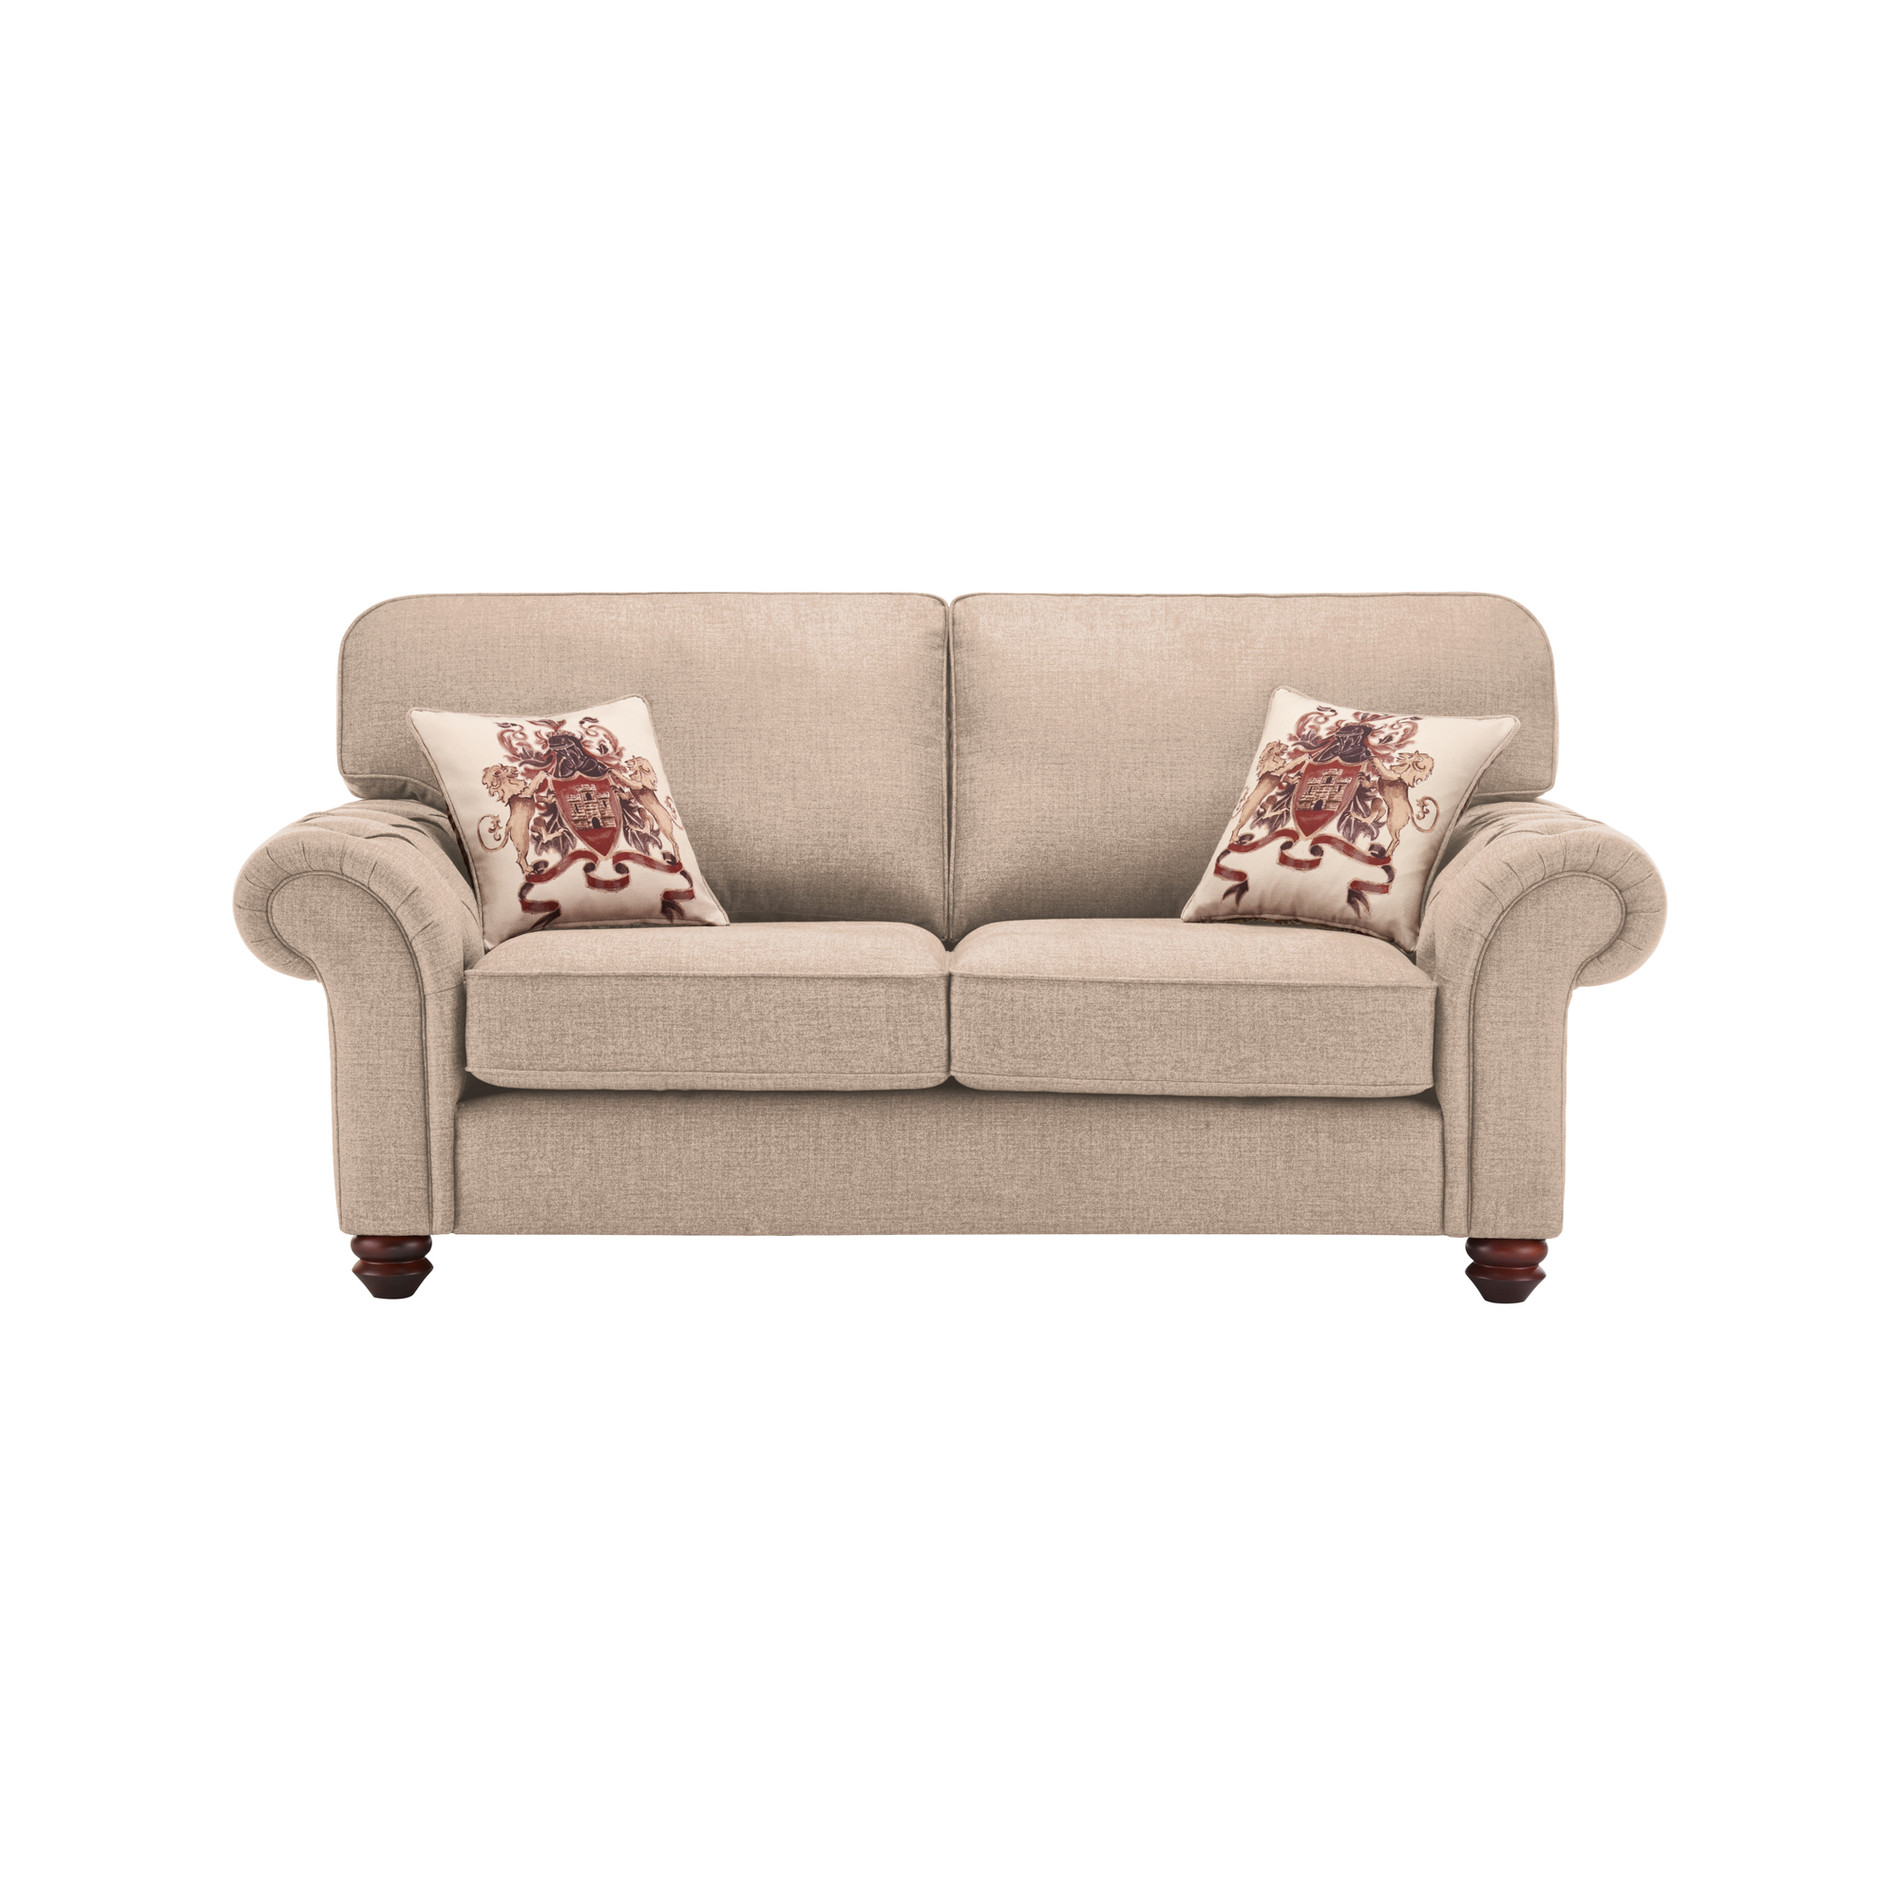 Sandringham 2 Seater High Back Sofa in Beige Beige Scatter